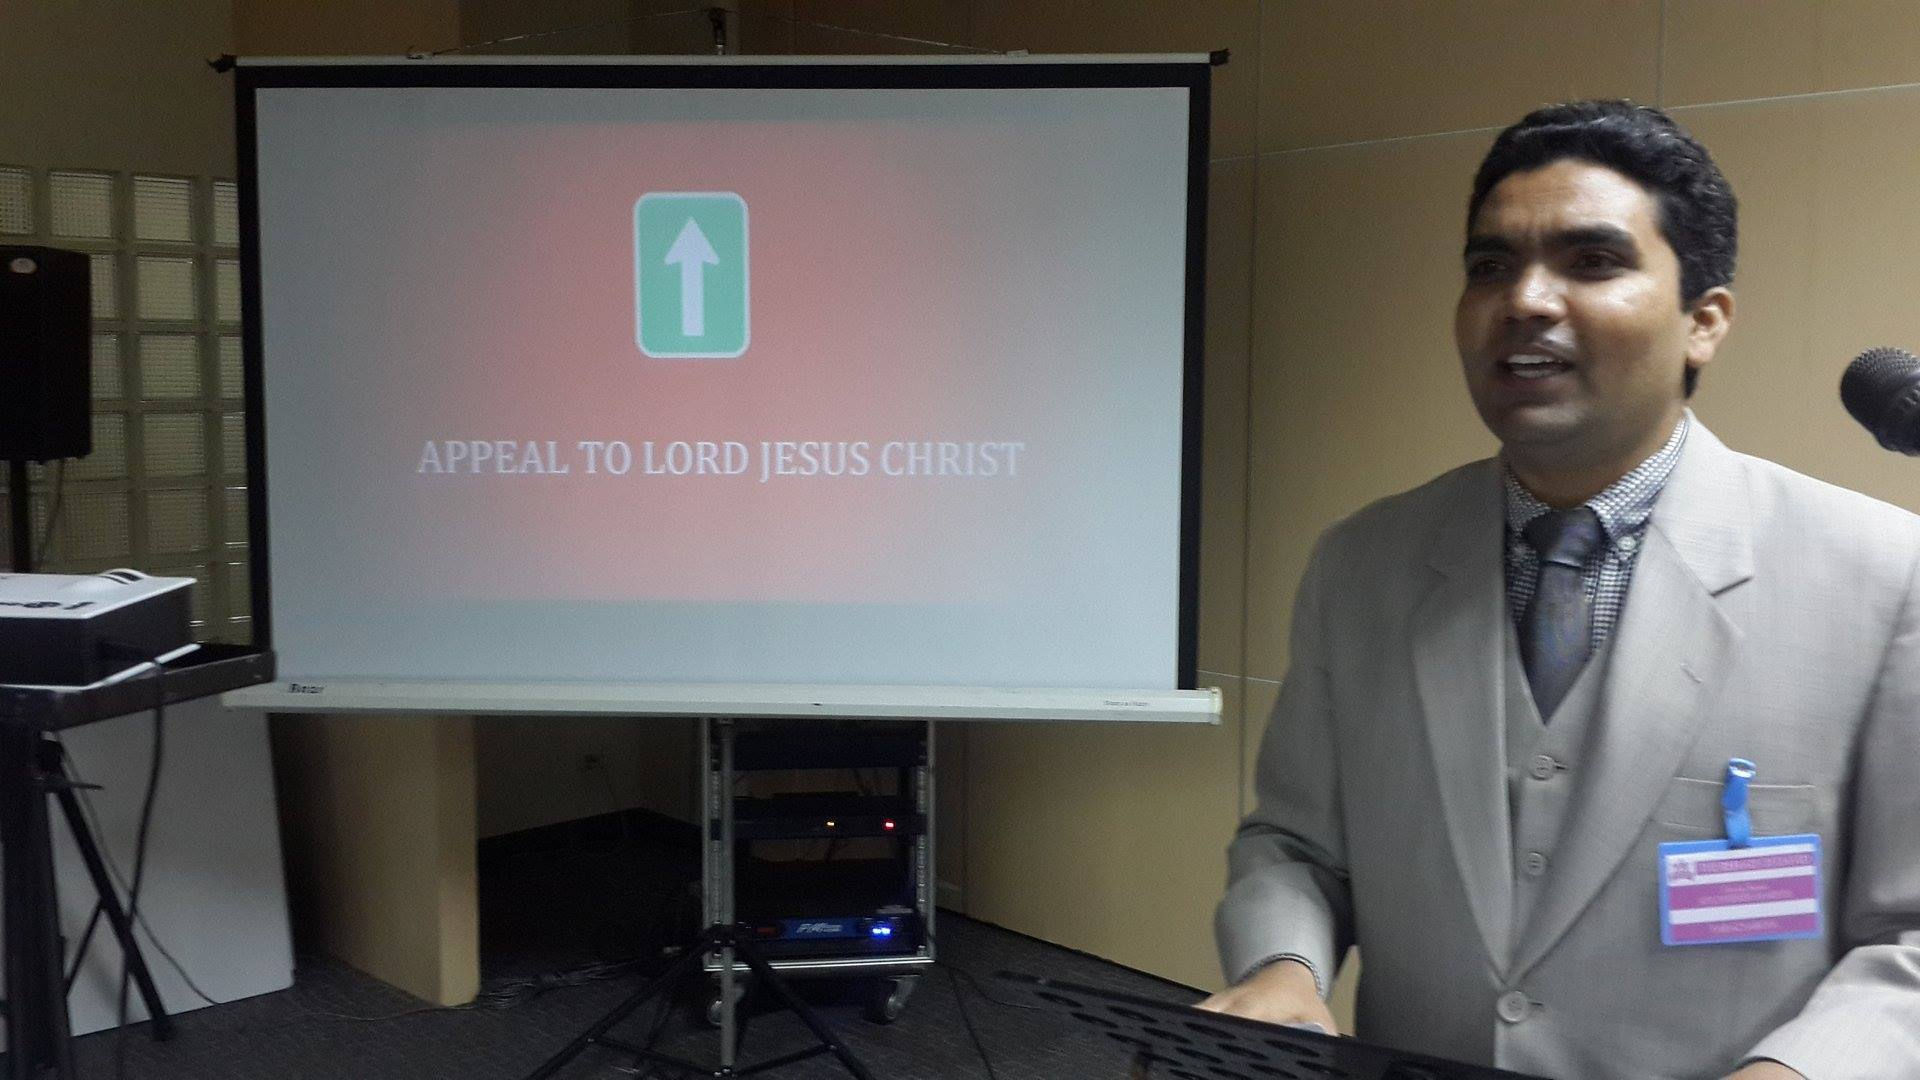 Appeal to the Lord Jesus Christ